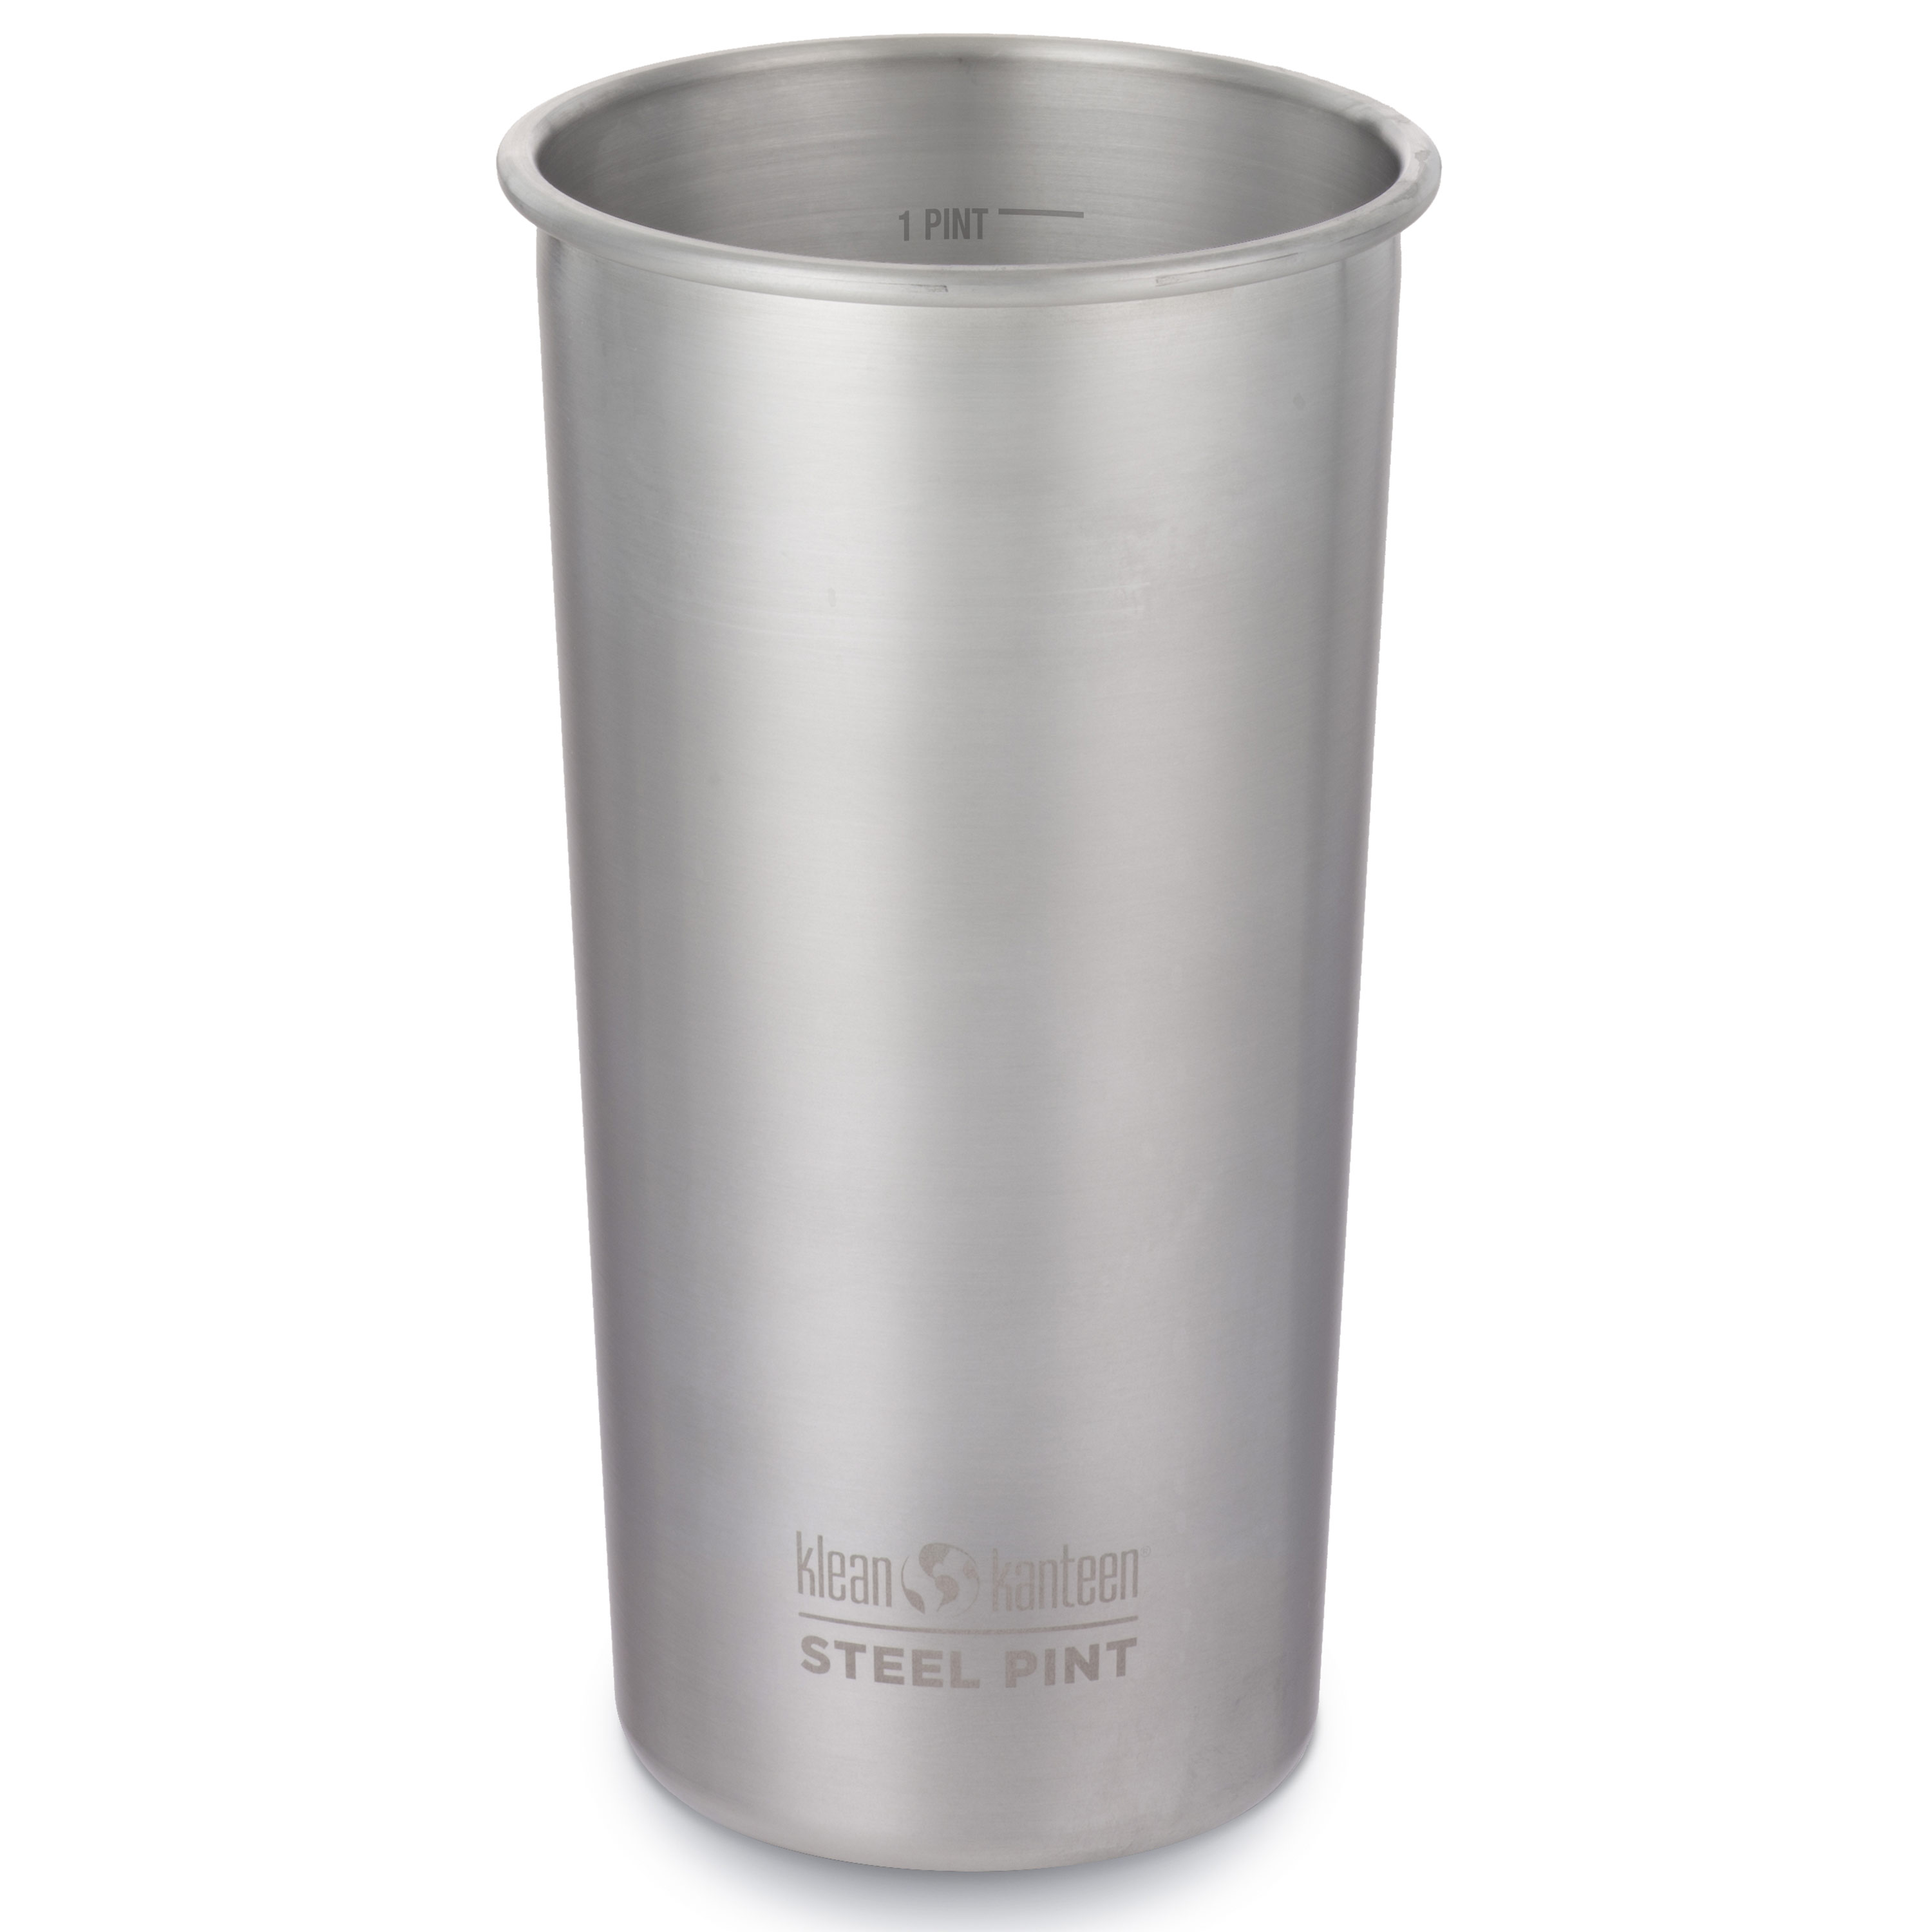 Klean Kanteen Pint Cup brushed stainless